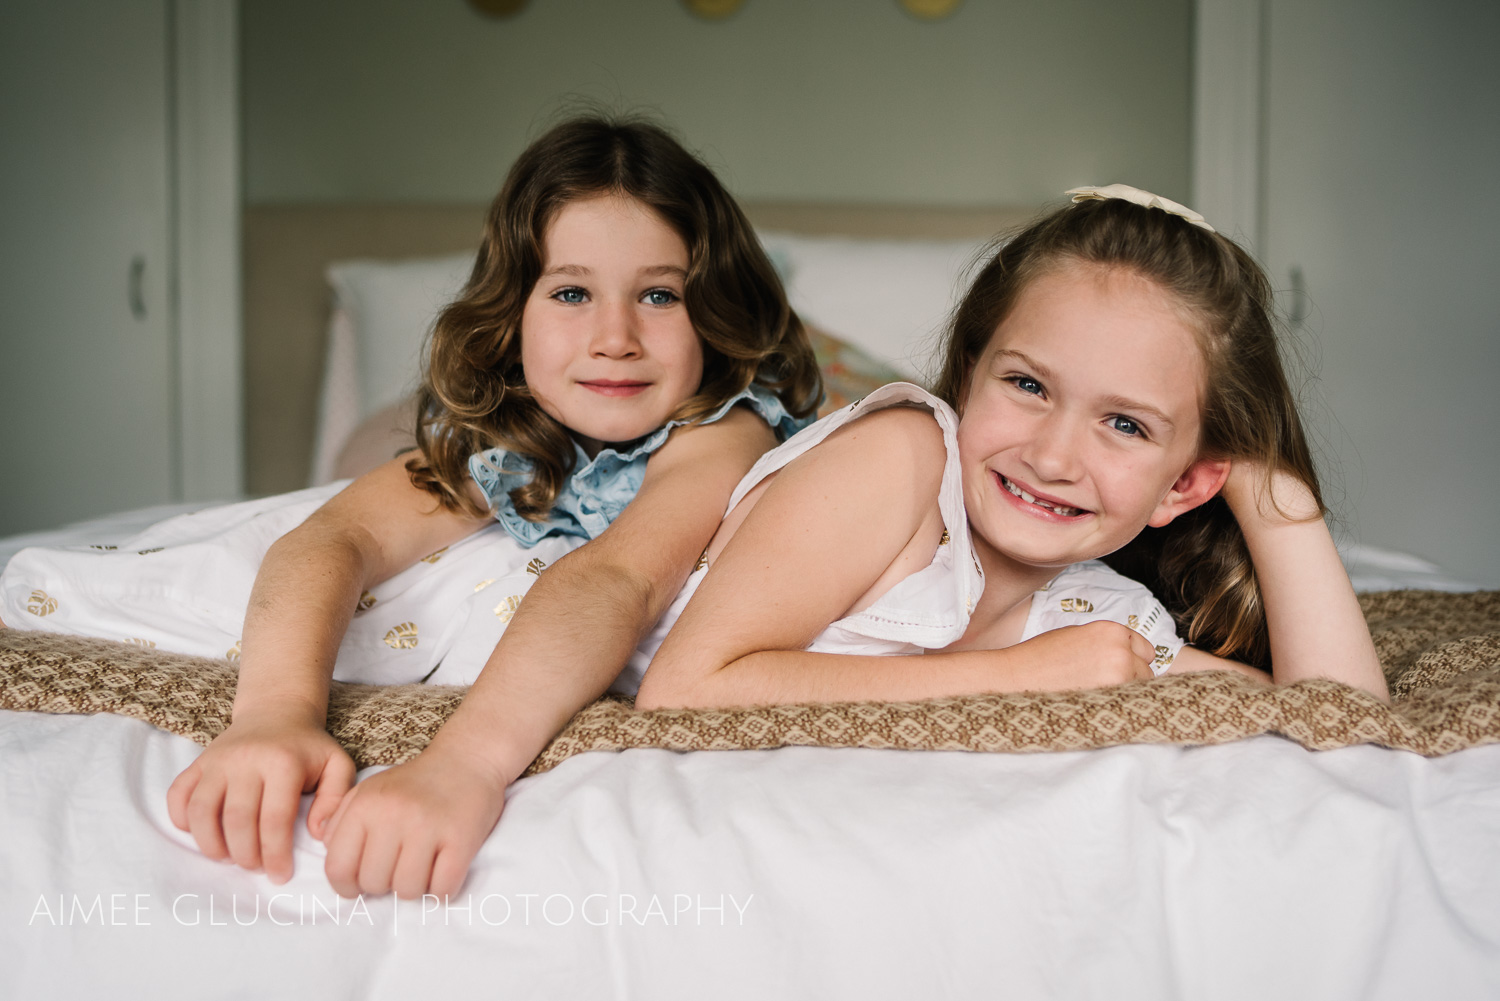 Baudinet Family Session by Aimee Glucina Photography-4.jpg